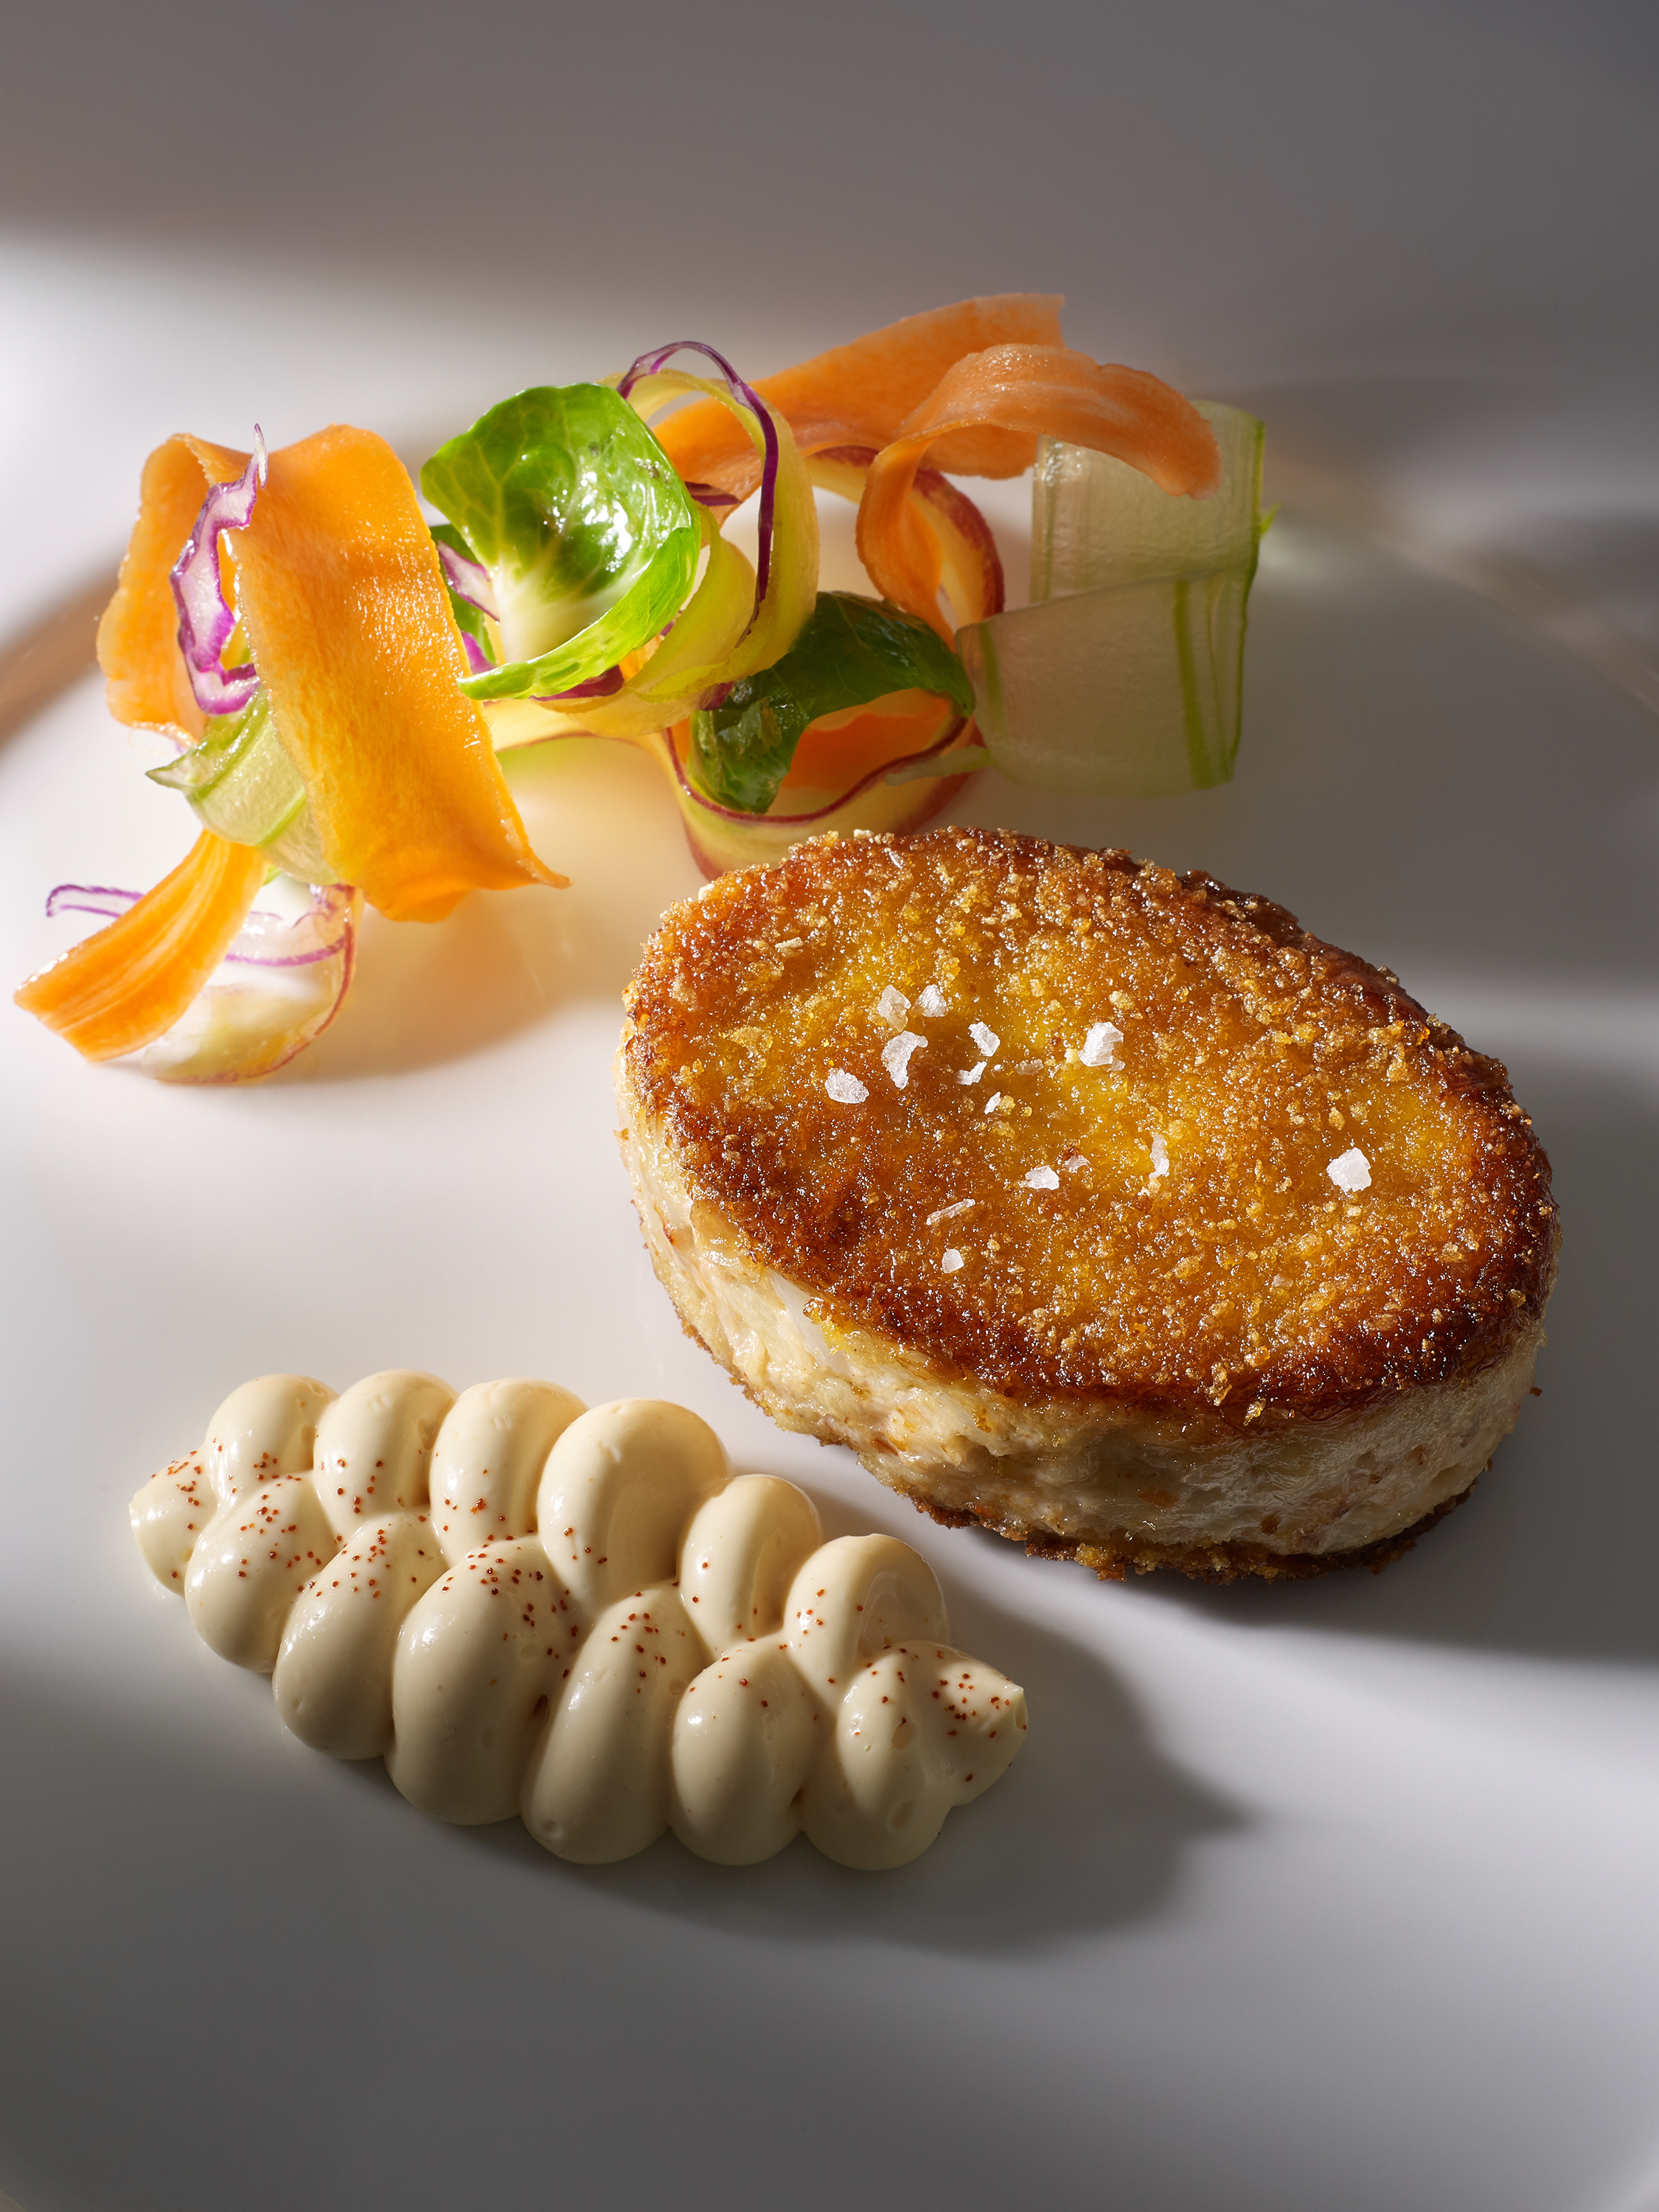 Crab cake on white plate